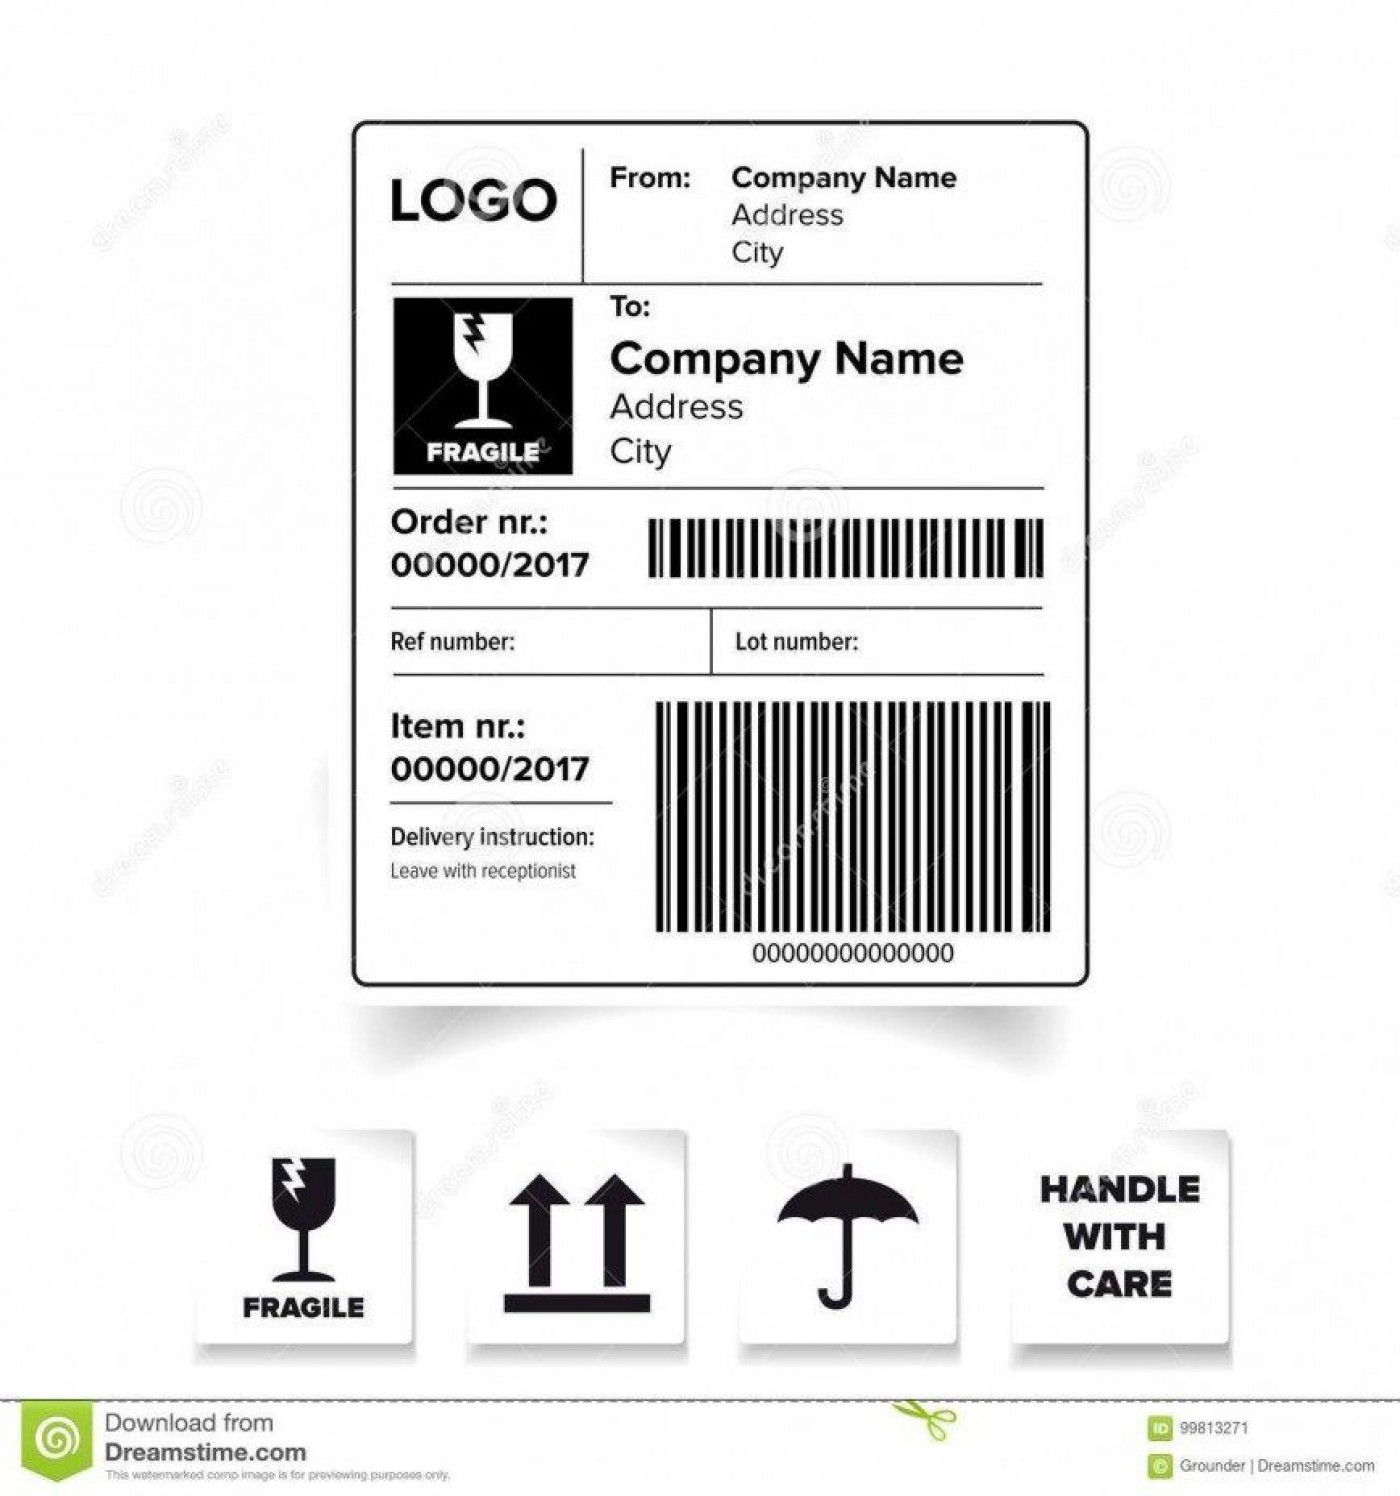 006 Excellent Usp Shipping Label Template Free Photo 1400